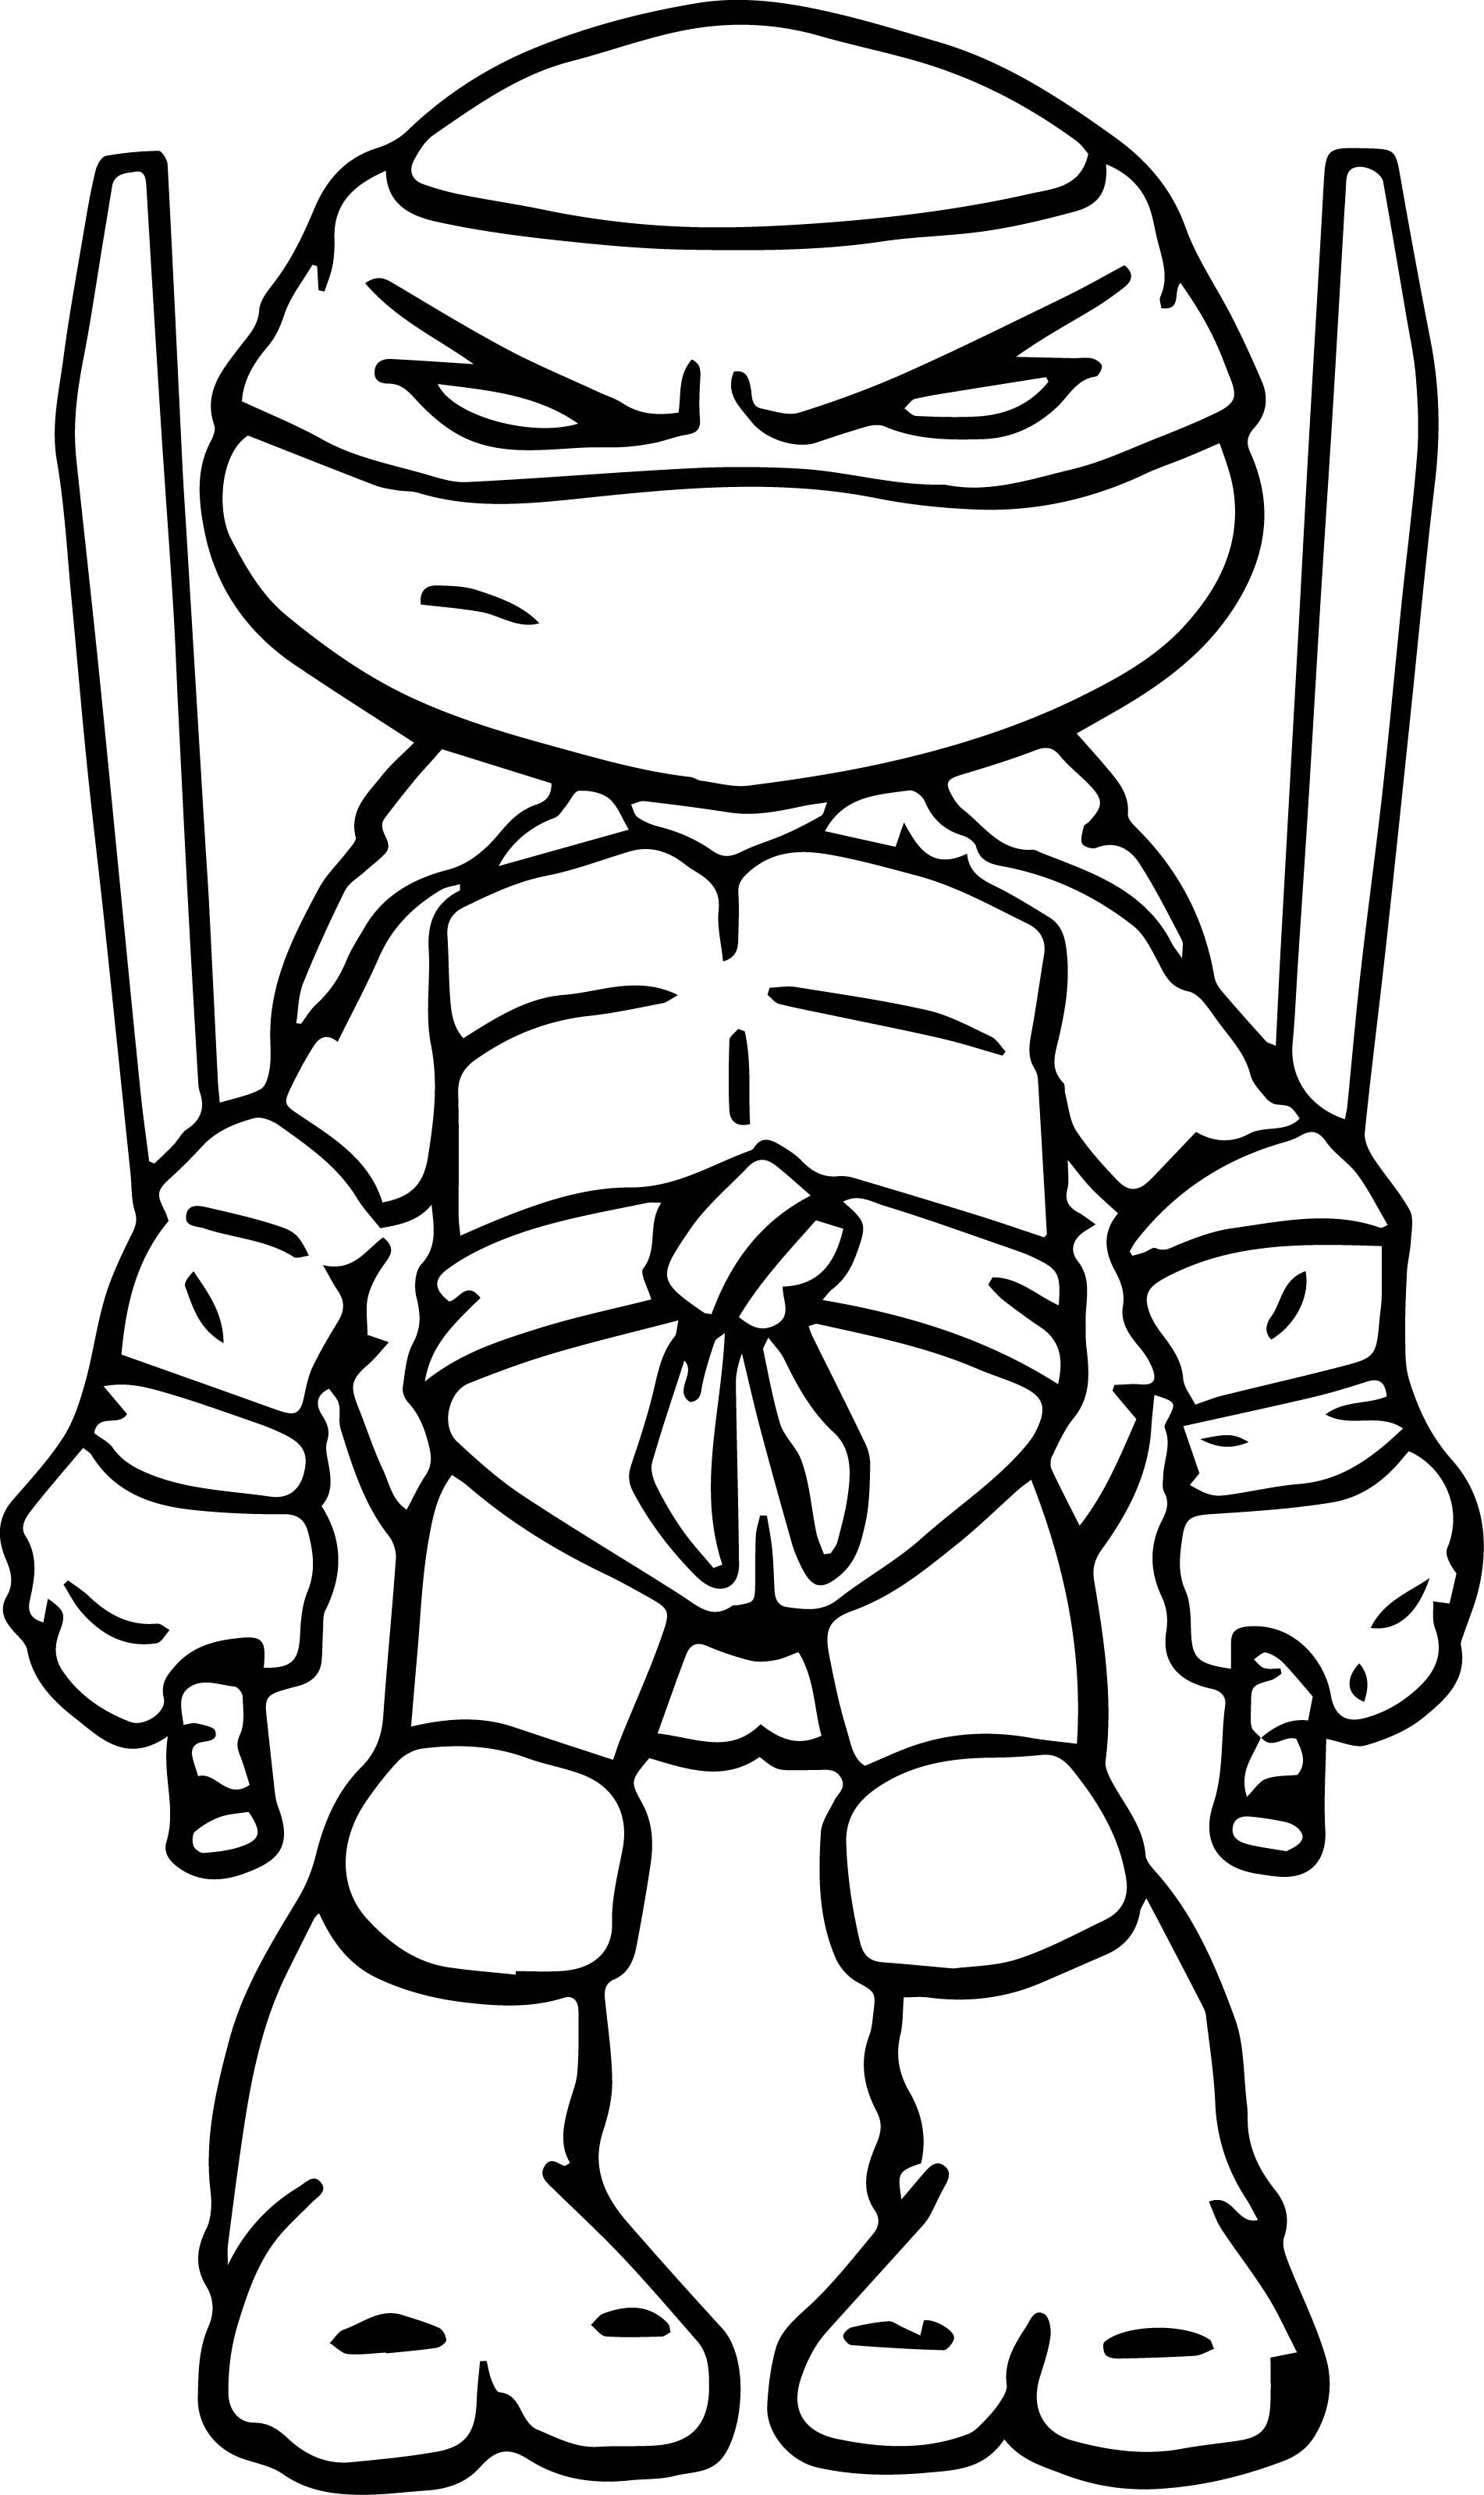 coloring pages ninja turtles – commoditytips.co